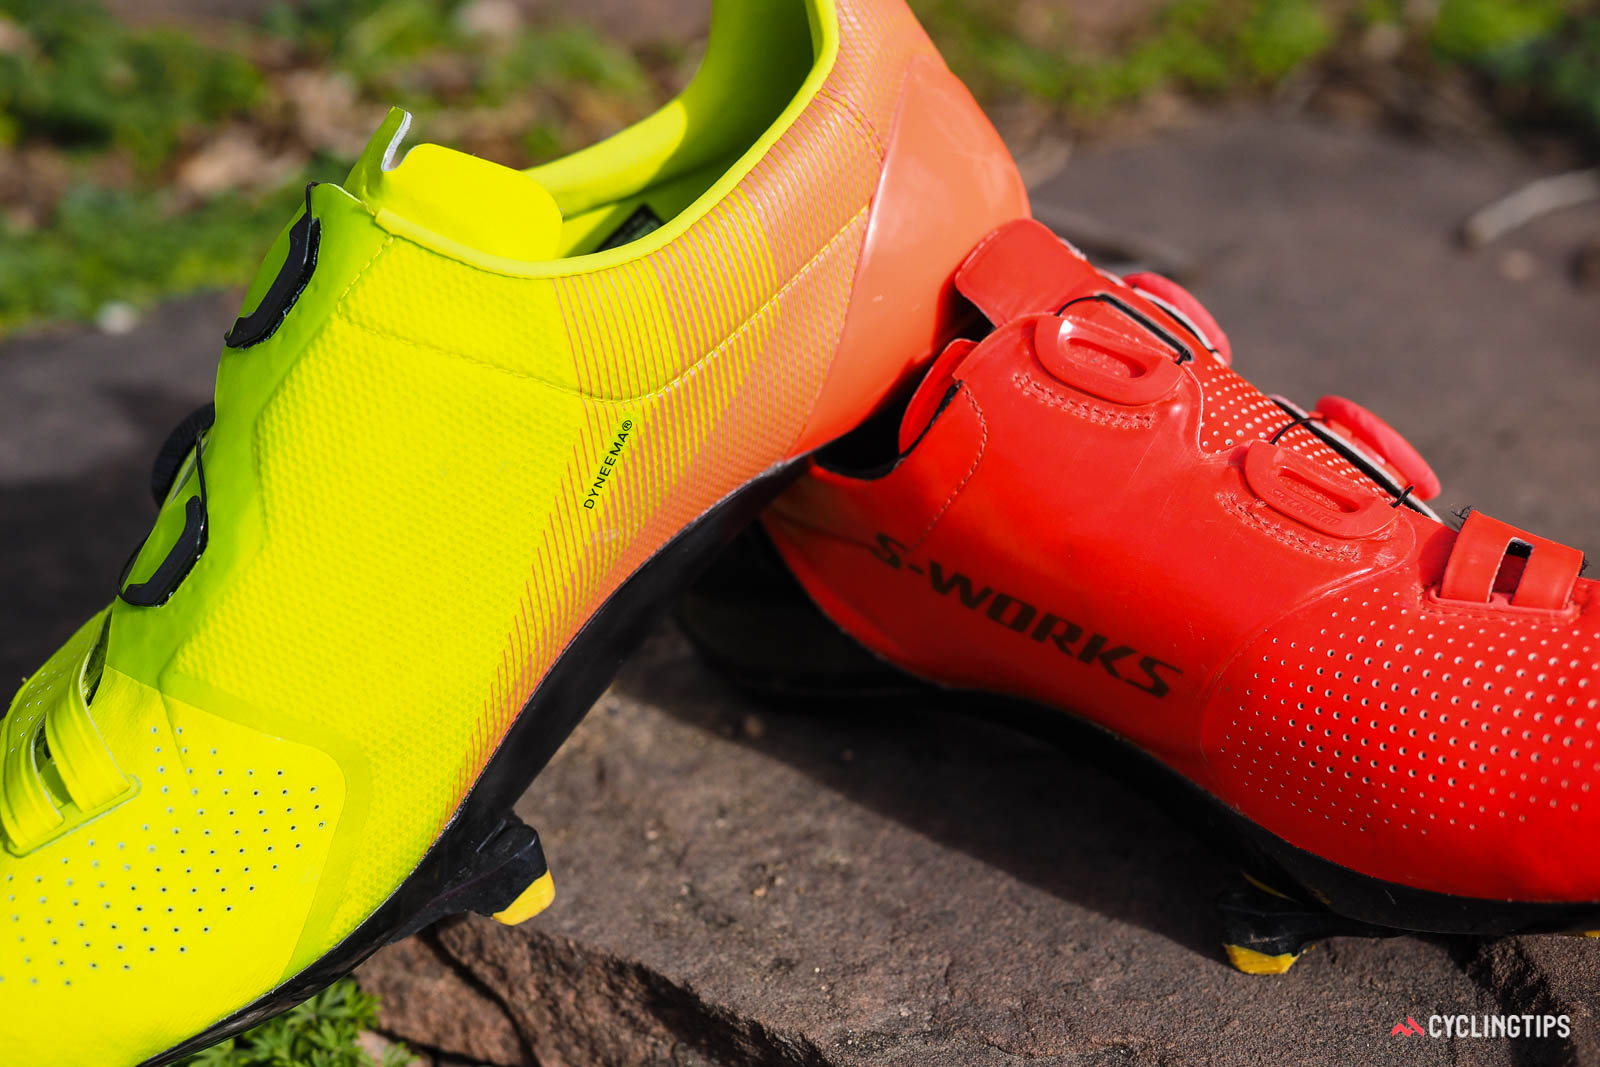 Specialized S-Works 7 shoes